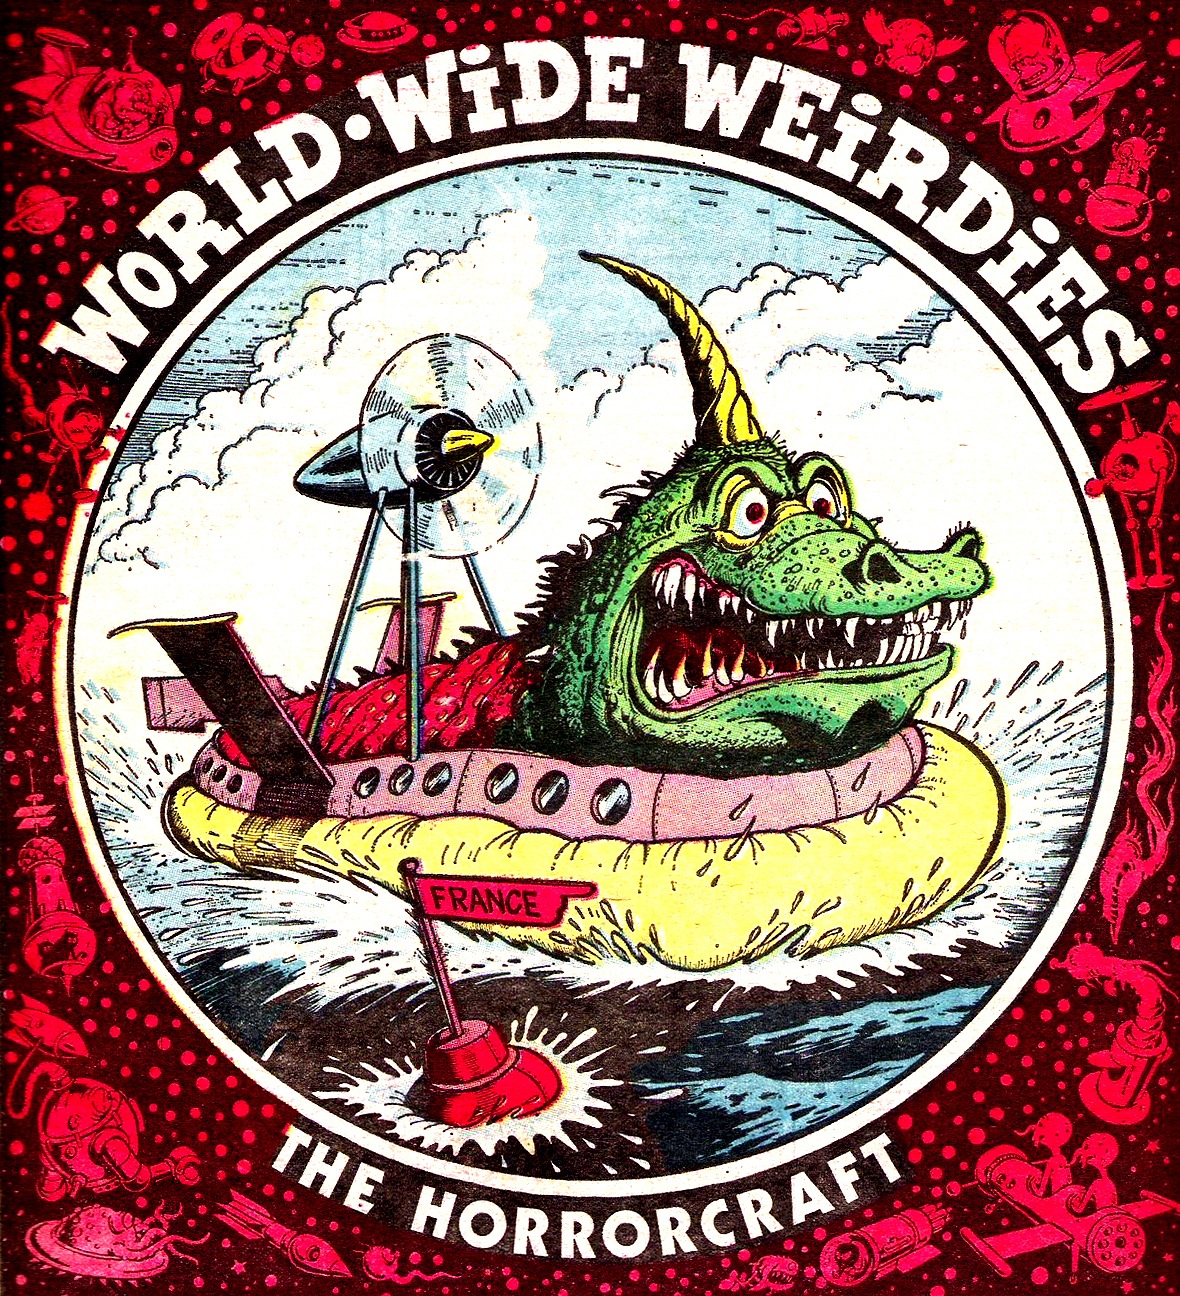 Ken Reid - World Wide Weirdies 53